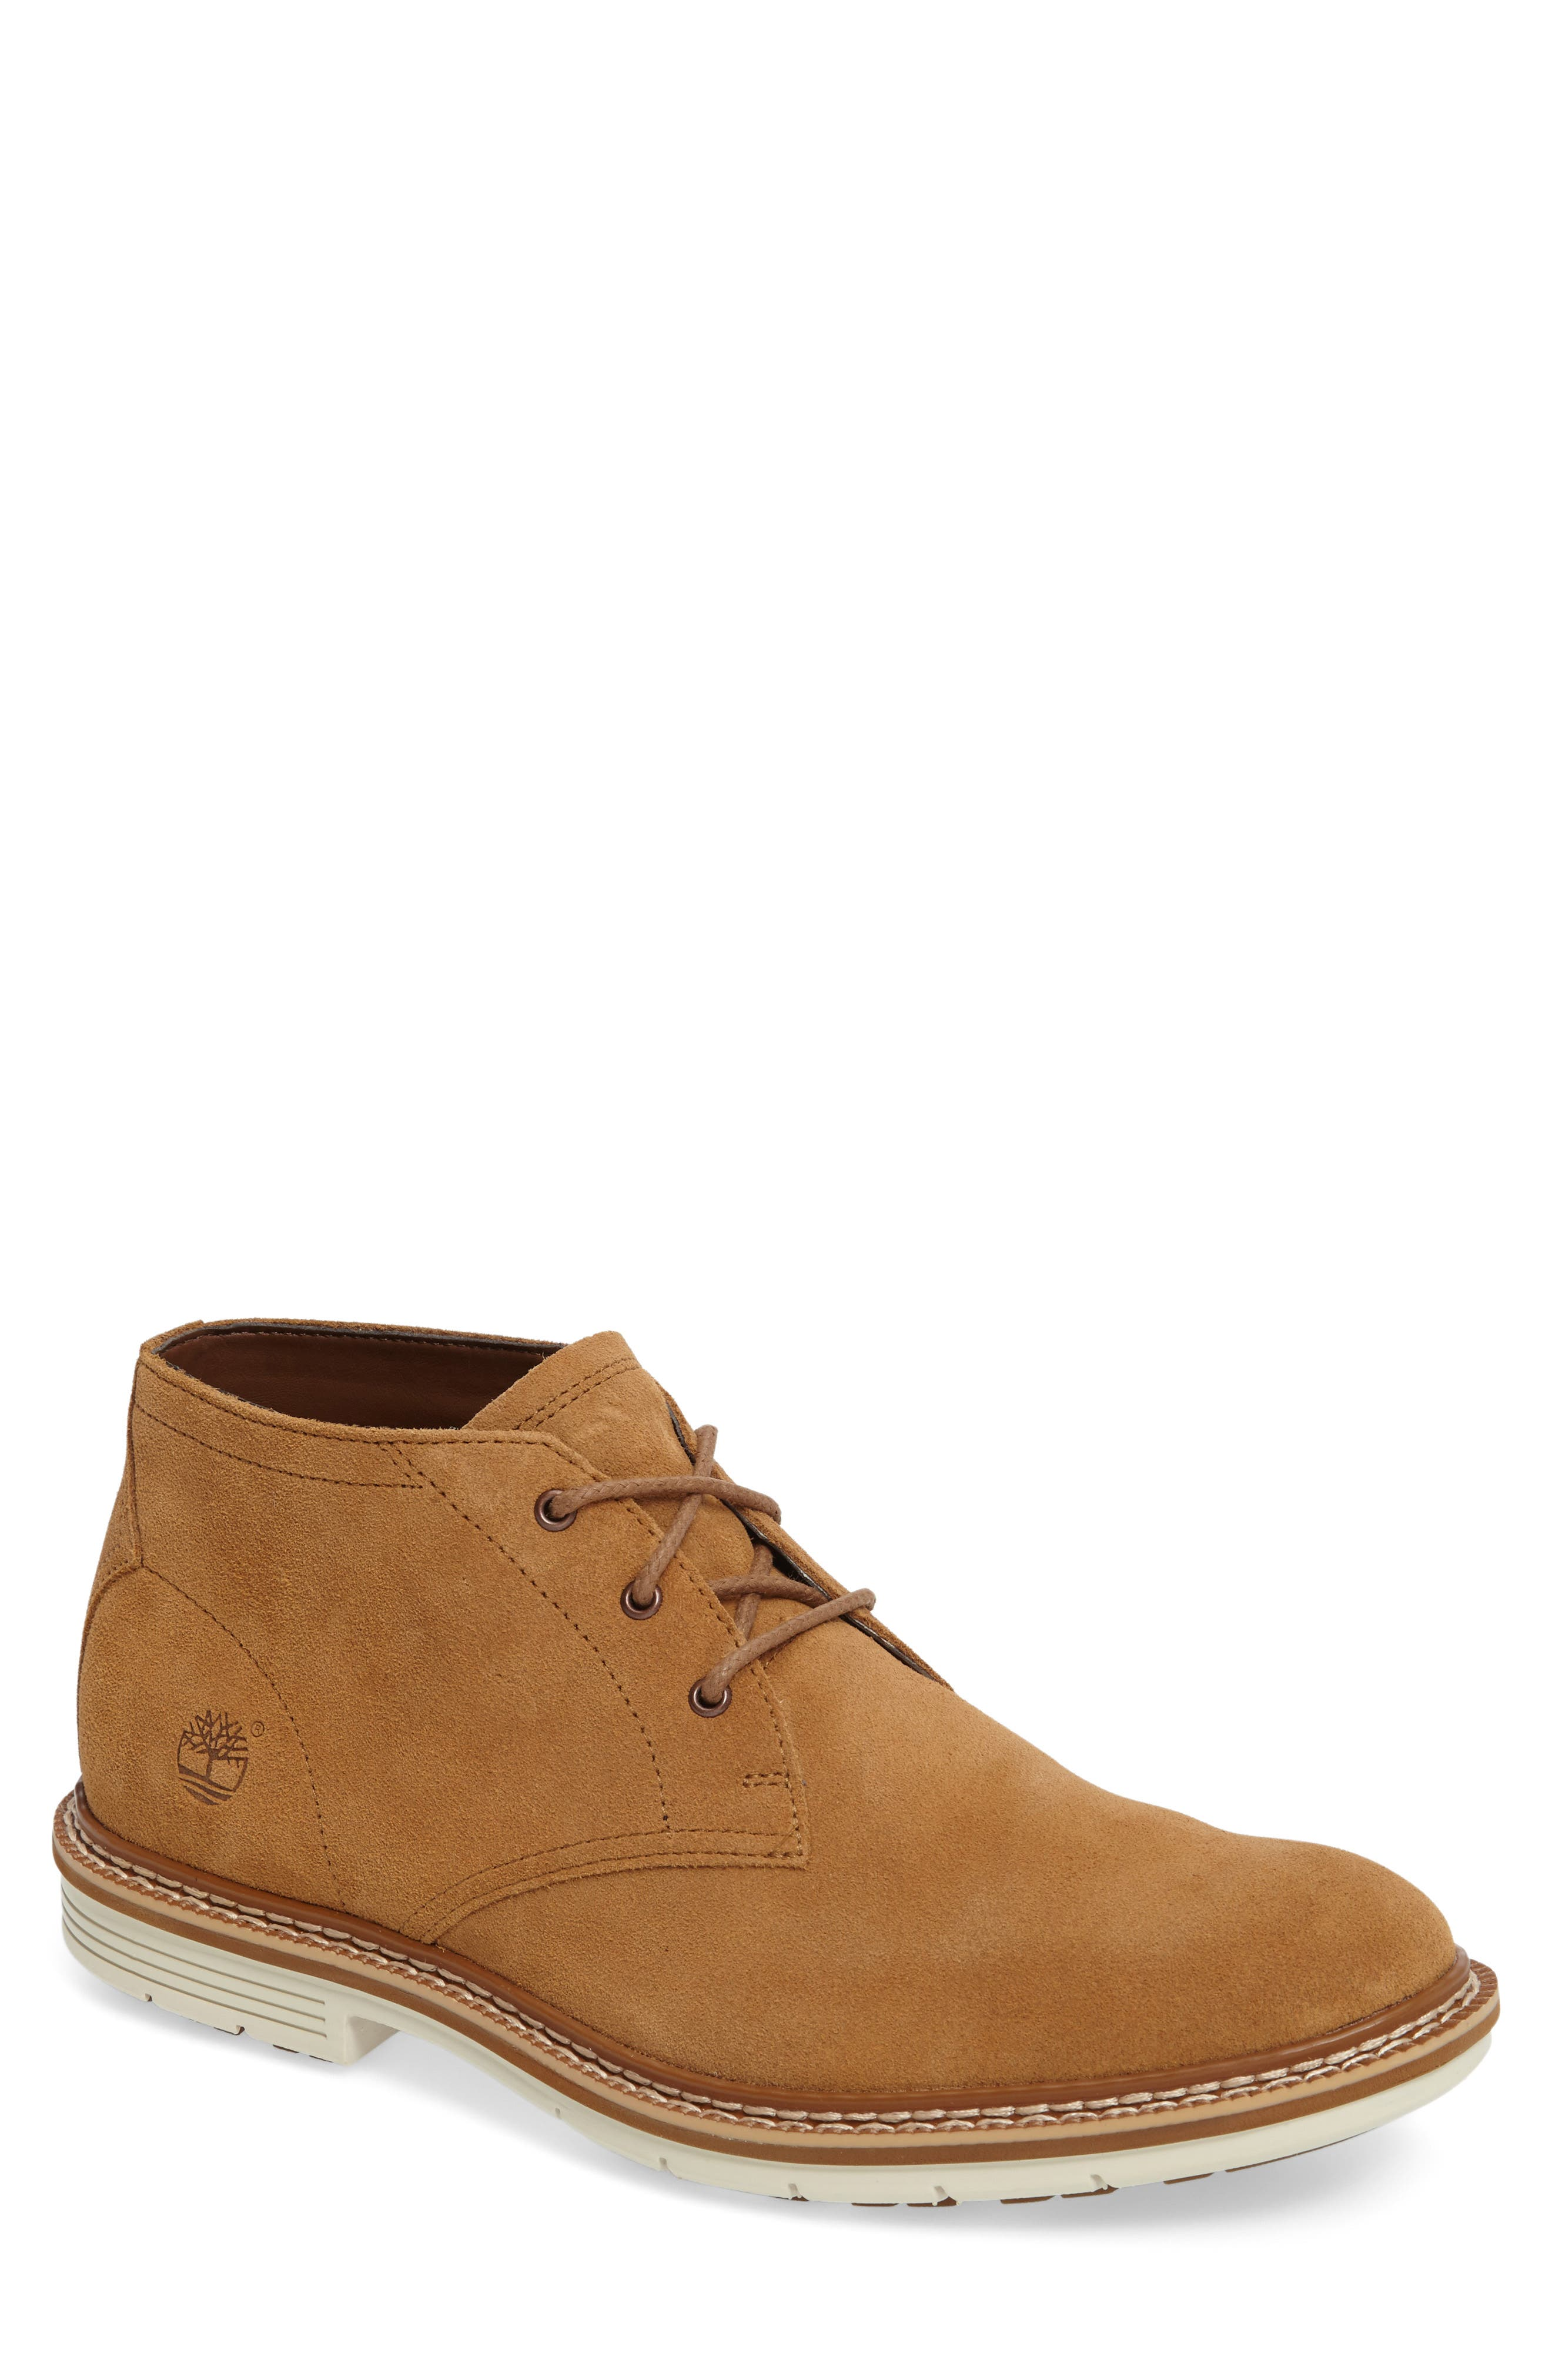 Main Image - Timberland Naples Trail Chukka Boot (Men)